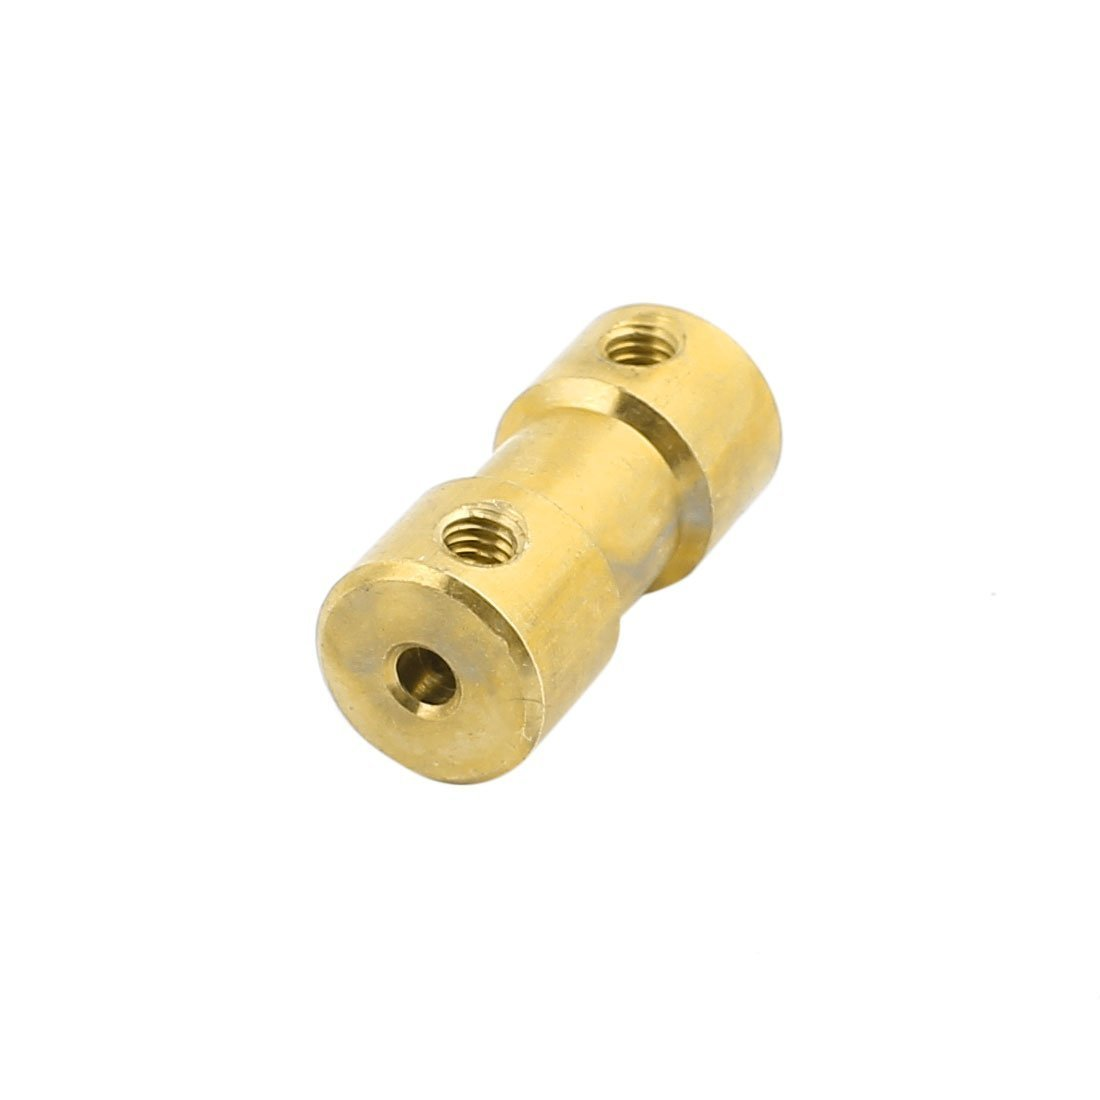 bargain house RC Model Toy Brass Joint Motor Shaft Coupling Connector